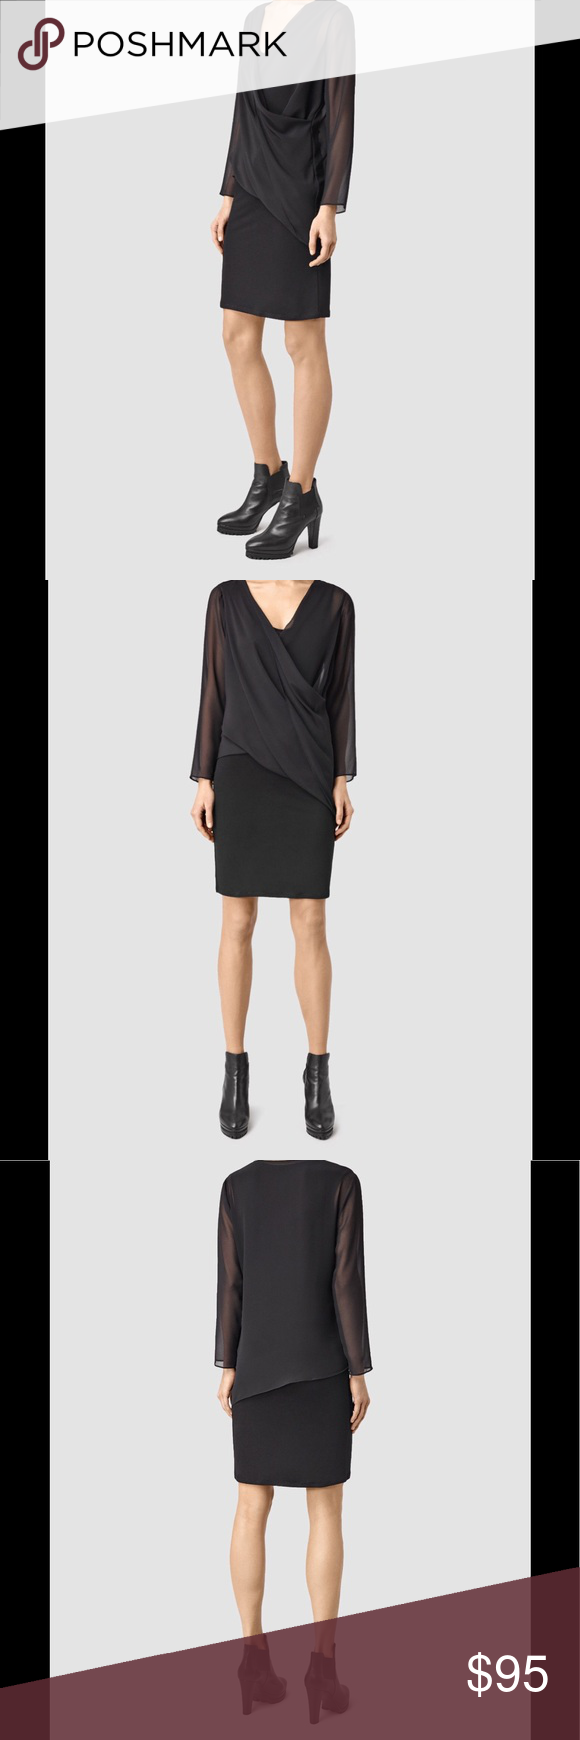 All Saints Lowe dress black US 0 2 4 6 8 AllSaints jersey and chiffon dress  Concealed zip fastenings at sides V-neck d99003130